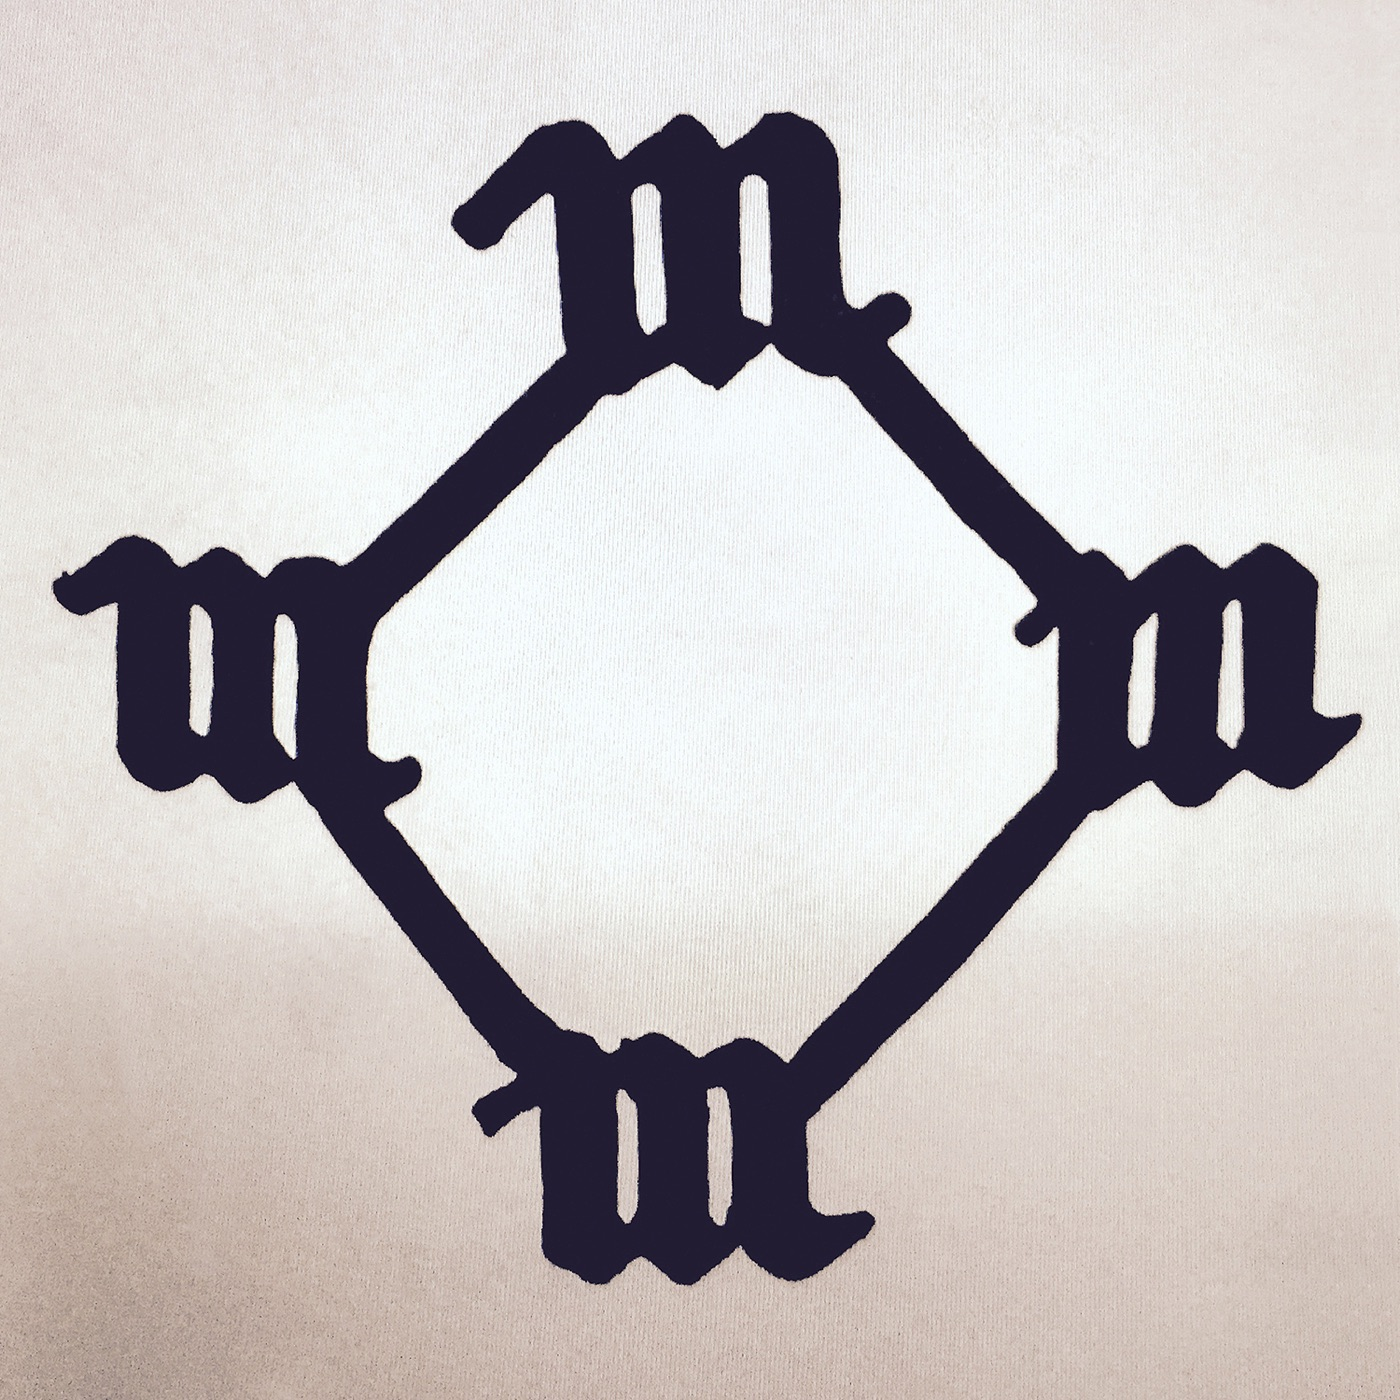 Kanye West - All Day (feat. Theophilus London, Allan Kingdom & Paul McCartney) - Single Cover